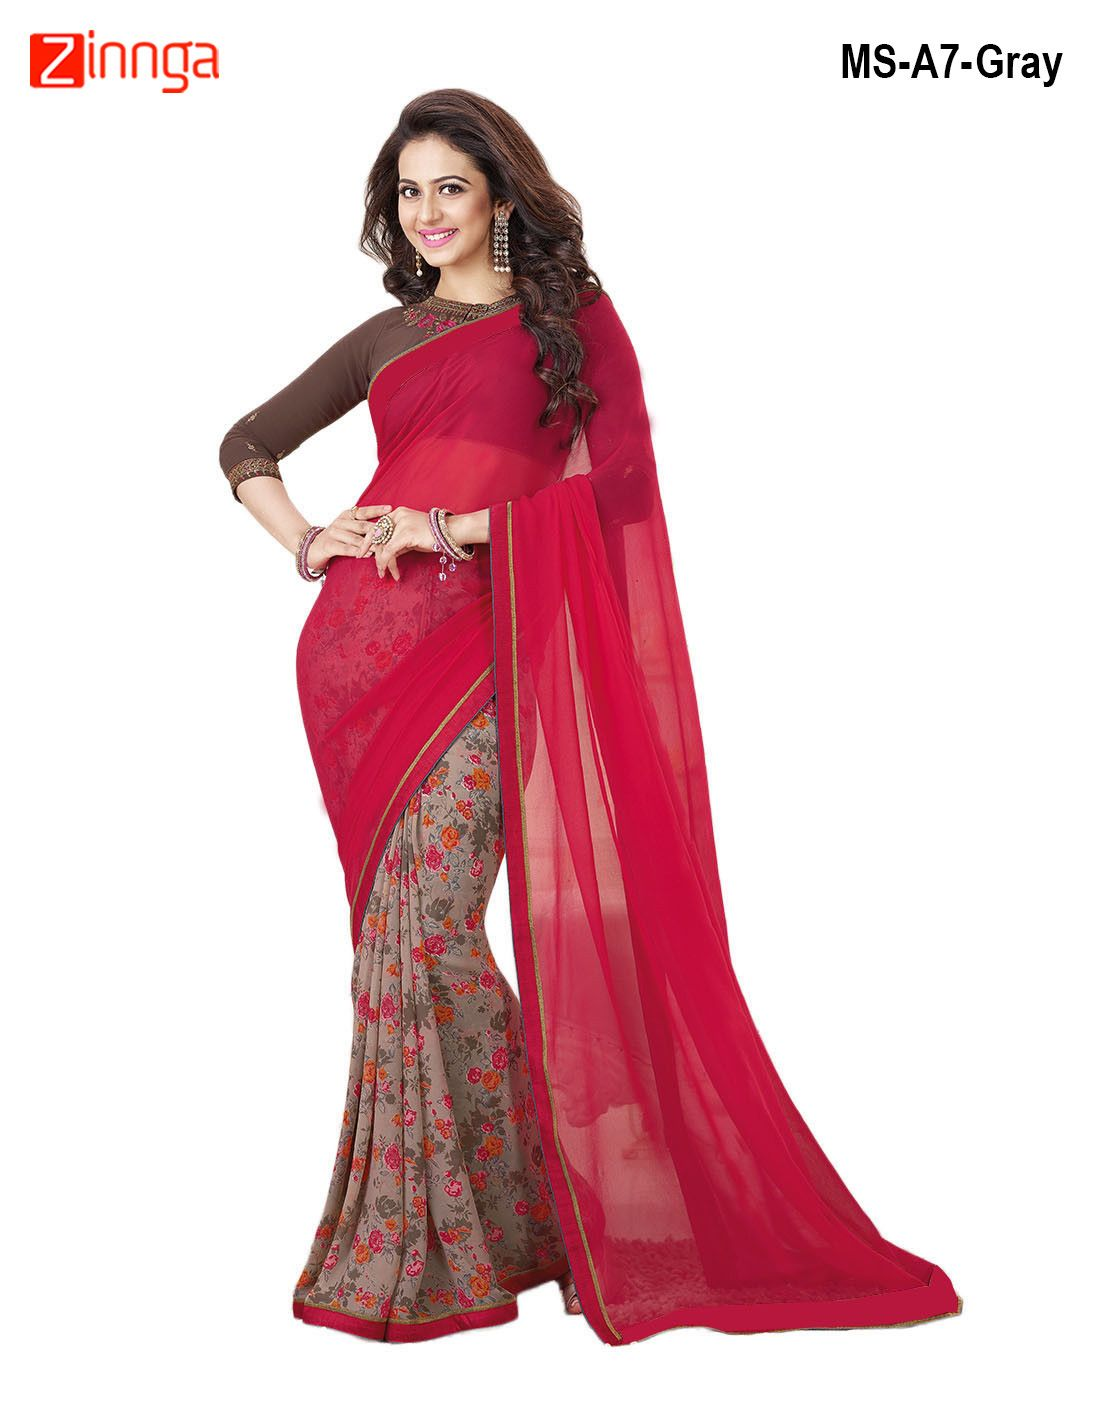 ffb041af91 #Sarees #Fashion #Trending #Nice #collection #Popular #Amazing  #zinngfashion #Saris #Deals #Looking #fashionable #New